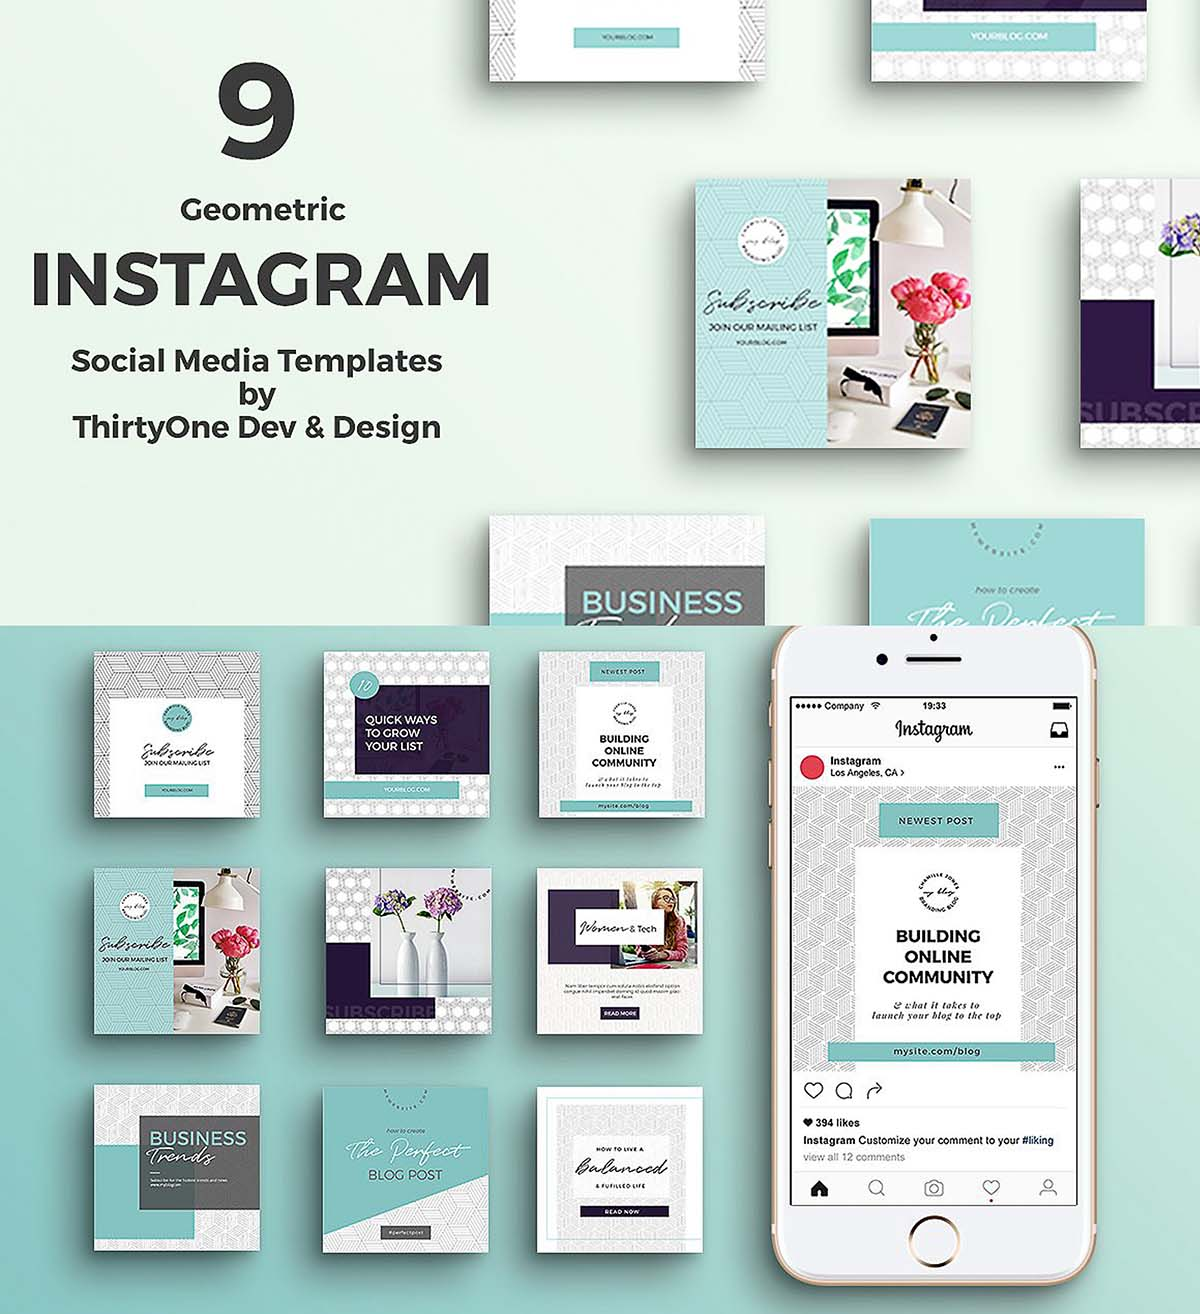 Geometric Instagram Templates Set Free Download